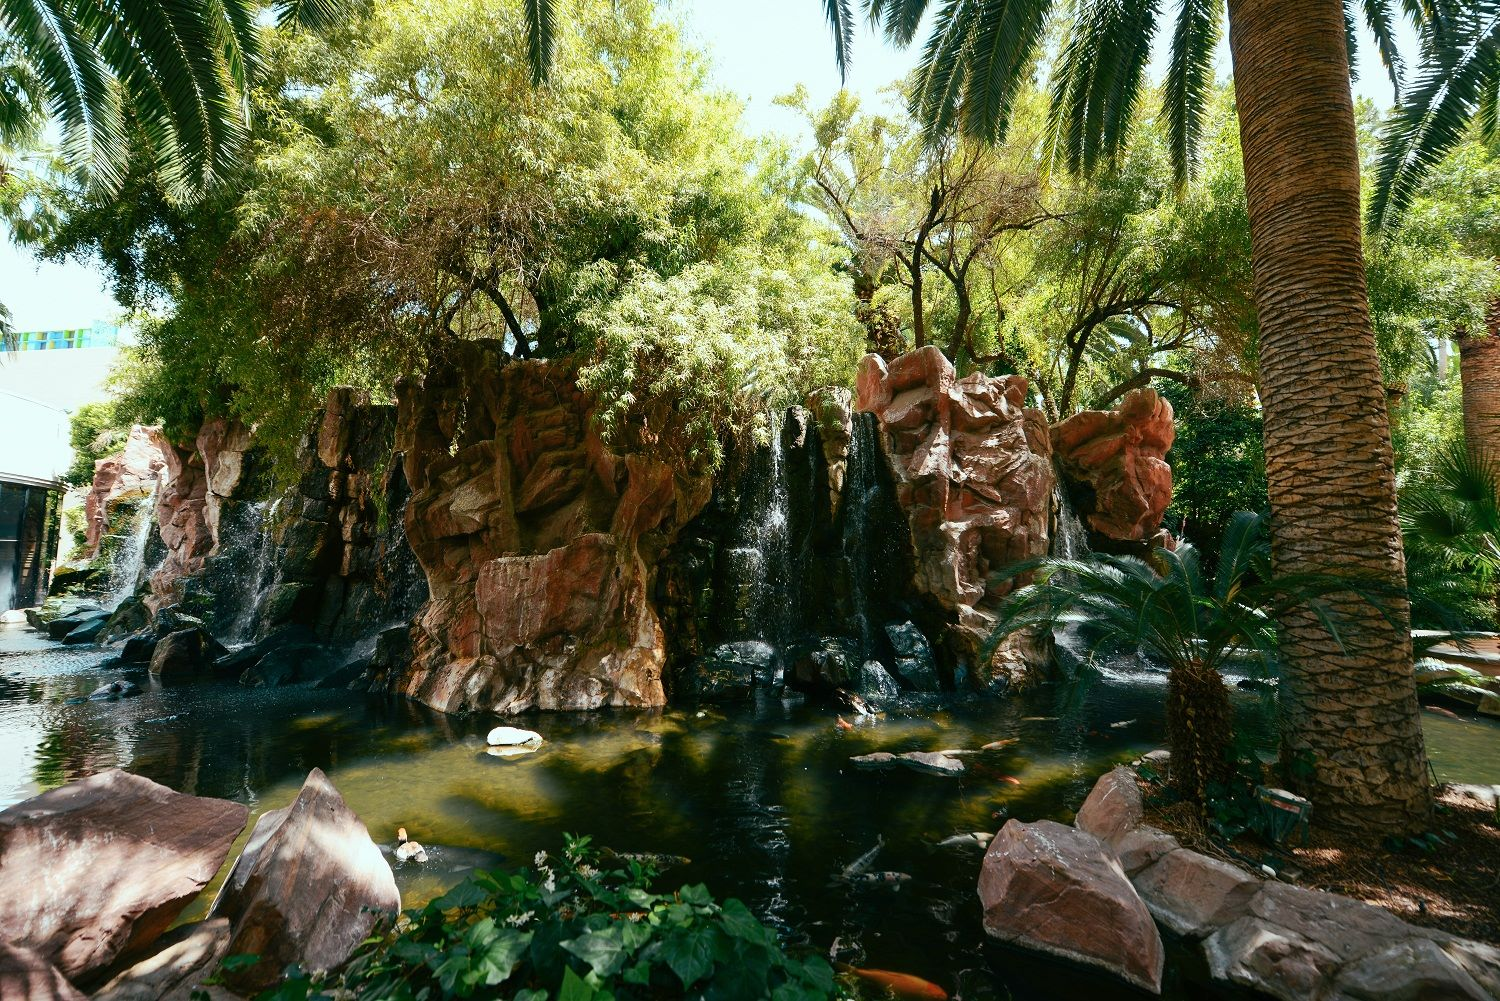 Wildlife Habitat at Flamingo Las Vegas Hotel and Casino